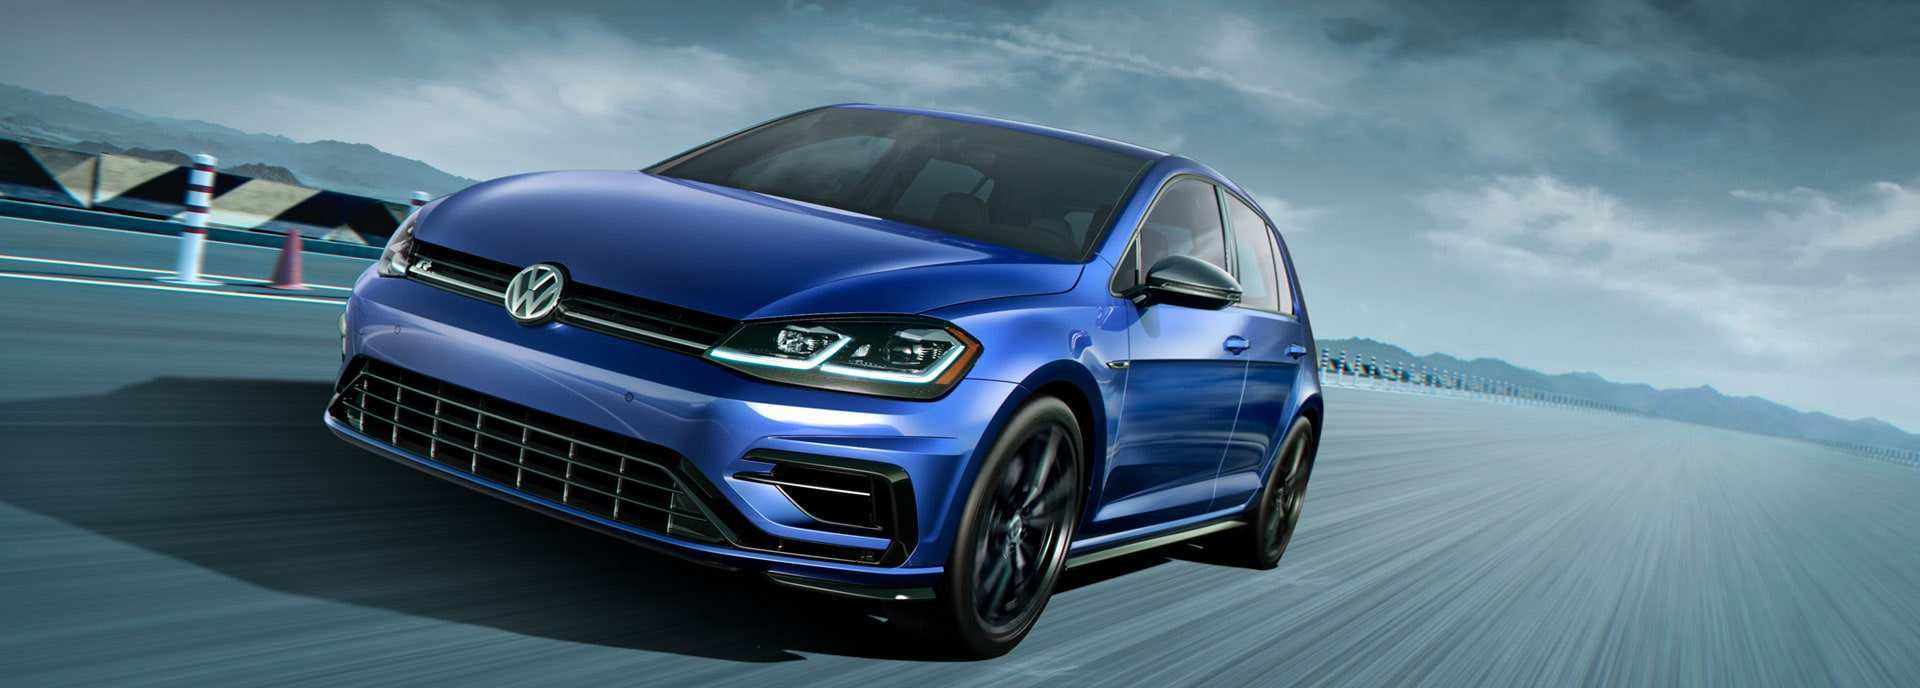 31 Concept of 2019 Volkswagen R Spesification for 2019 Volkswagen R